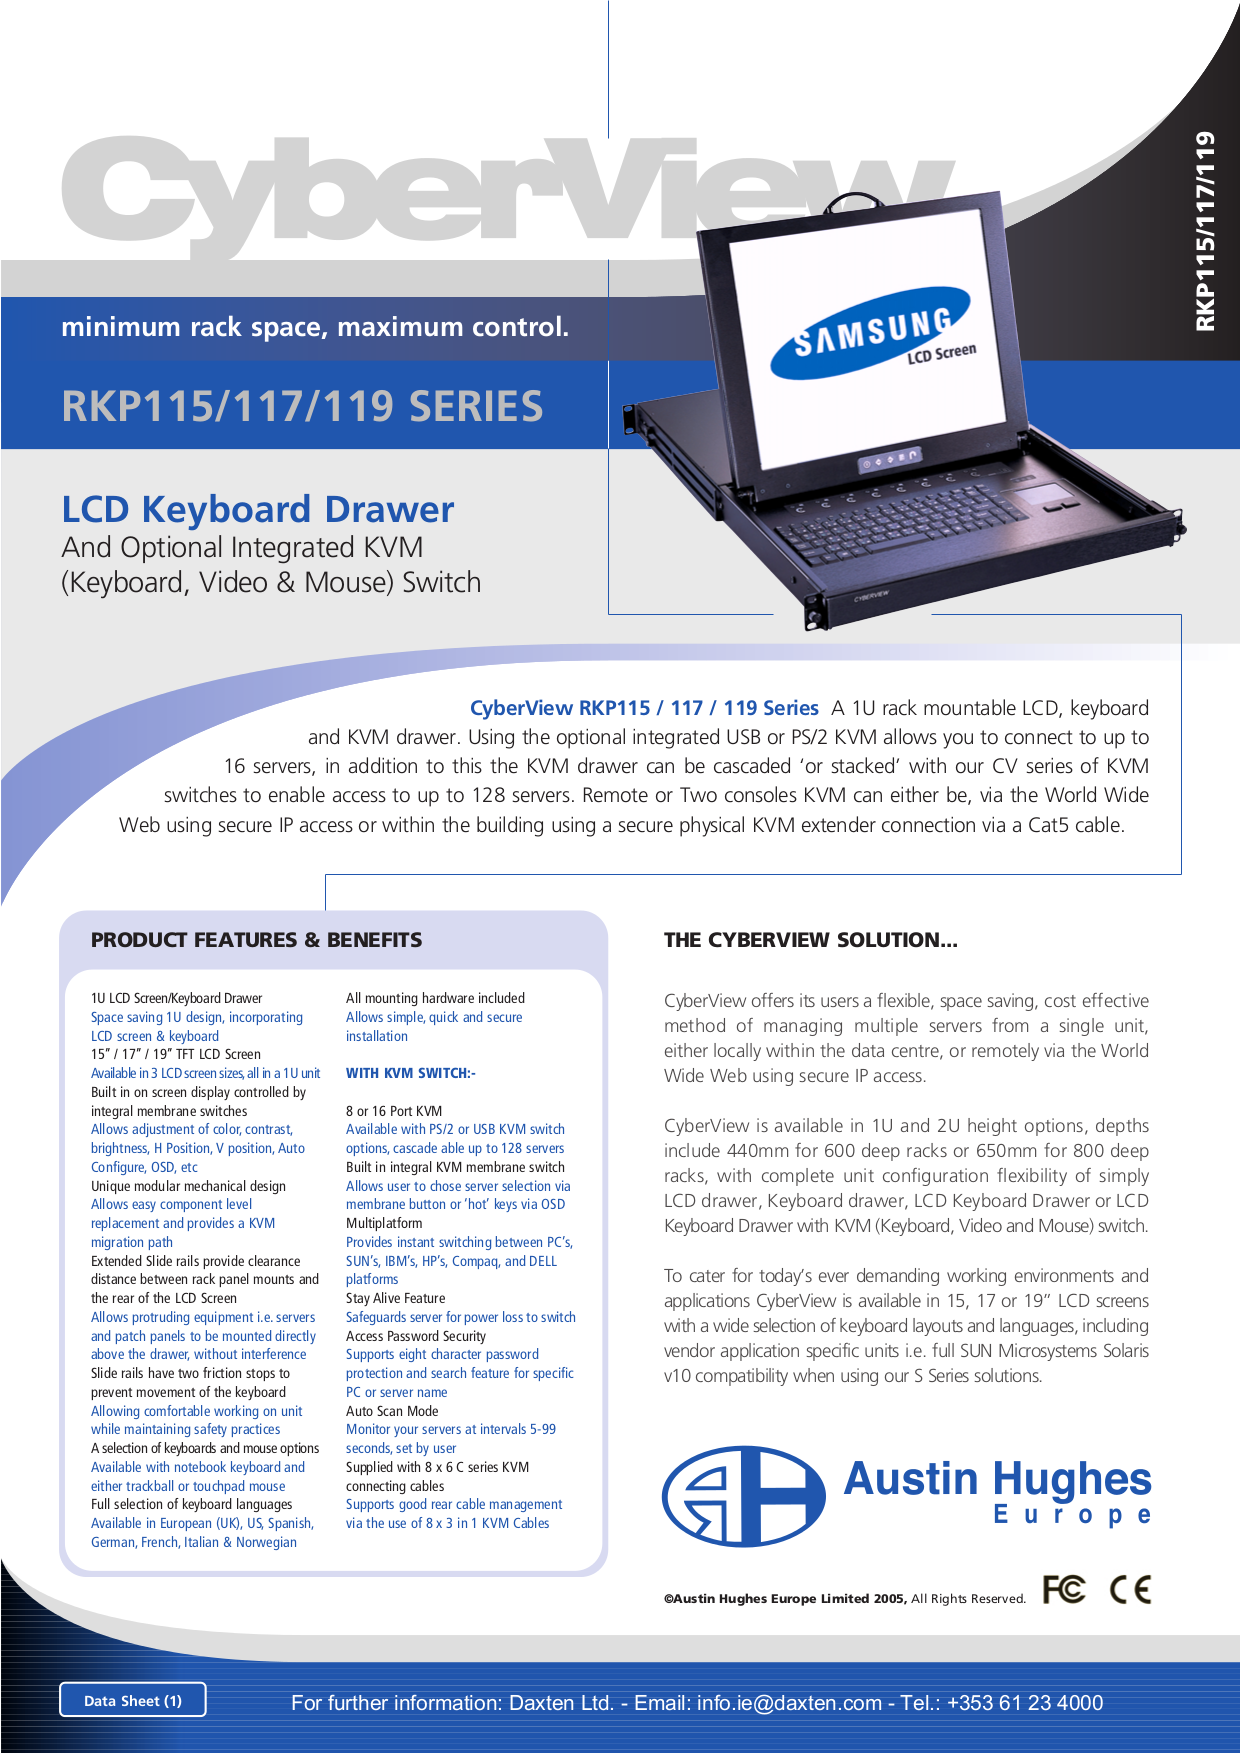 pdf for I-Tech Other RKP117-1601 Keyboard Drawers manual